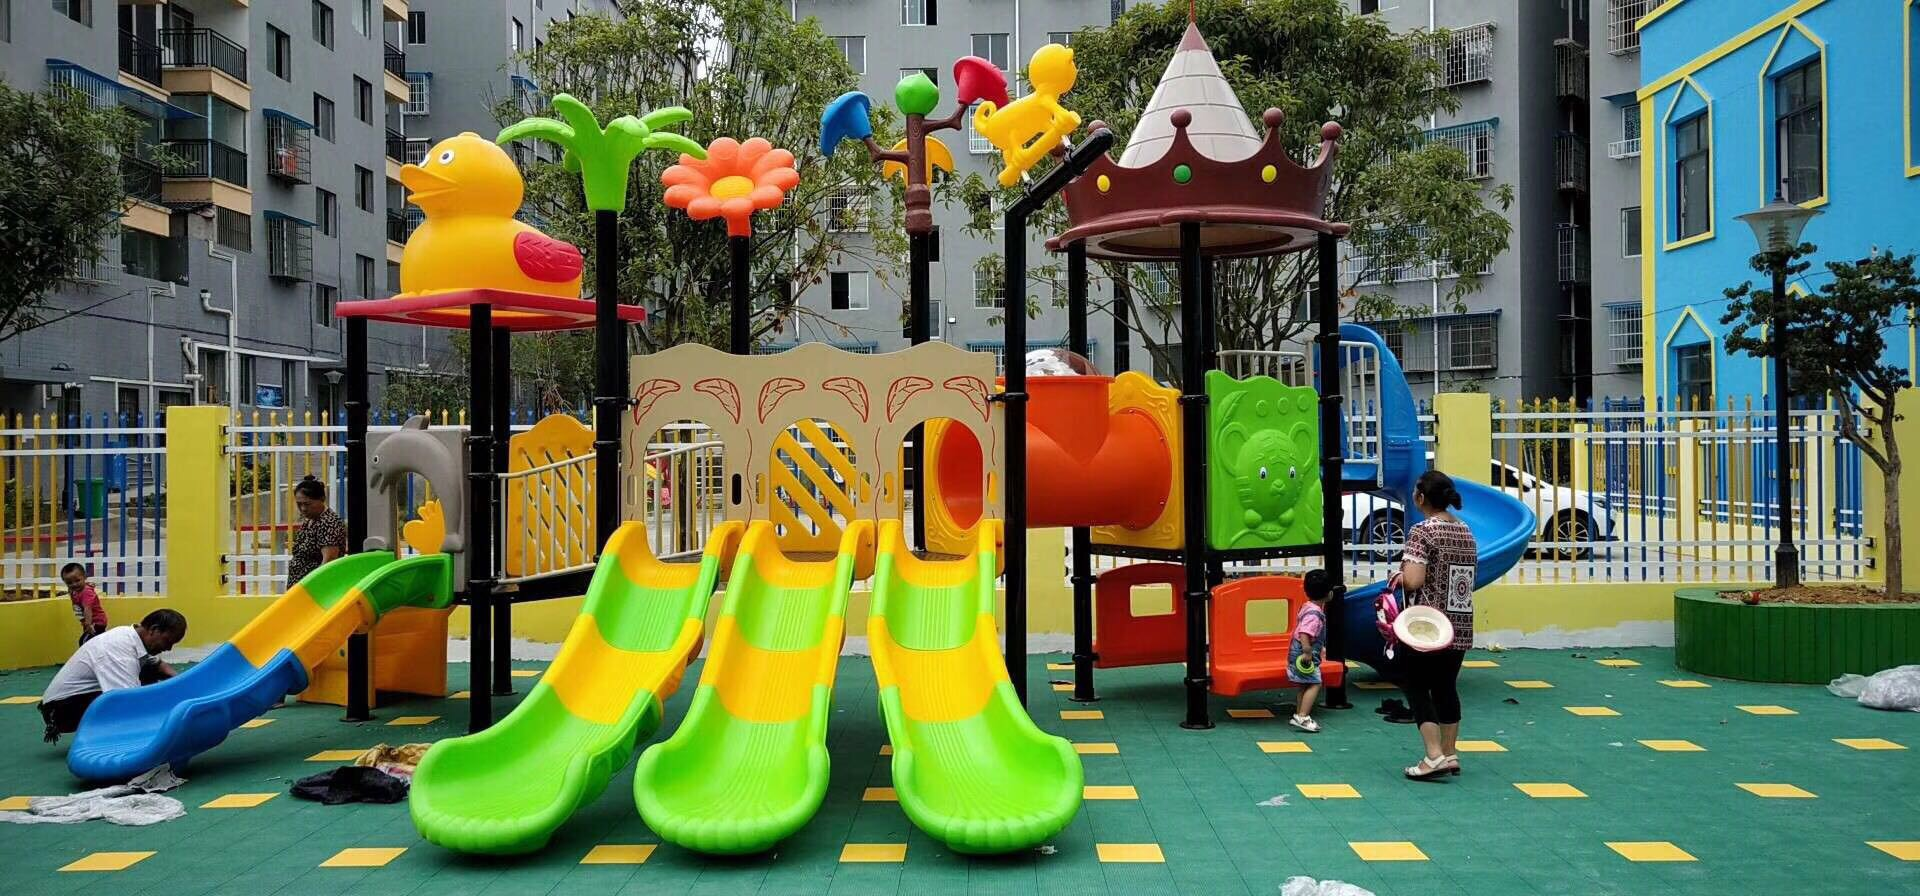 what is outdoor playground?